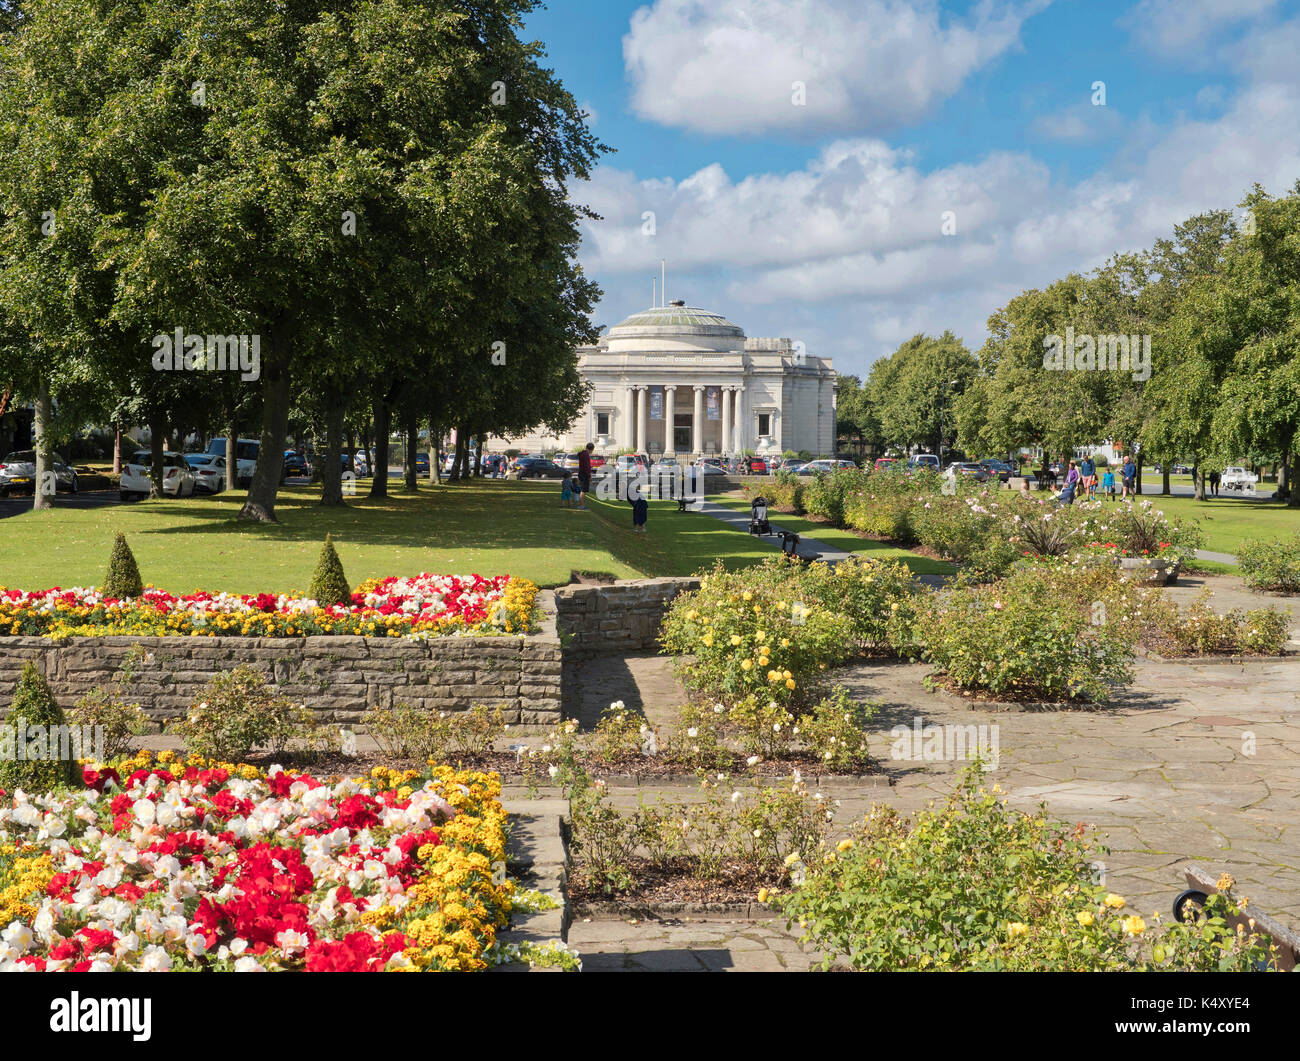 Port Sunlight Village, Wirral, showing floral displays and Lady Lever Art Gallery. - Stock Image